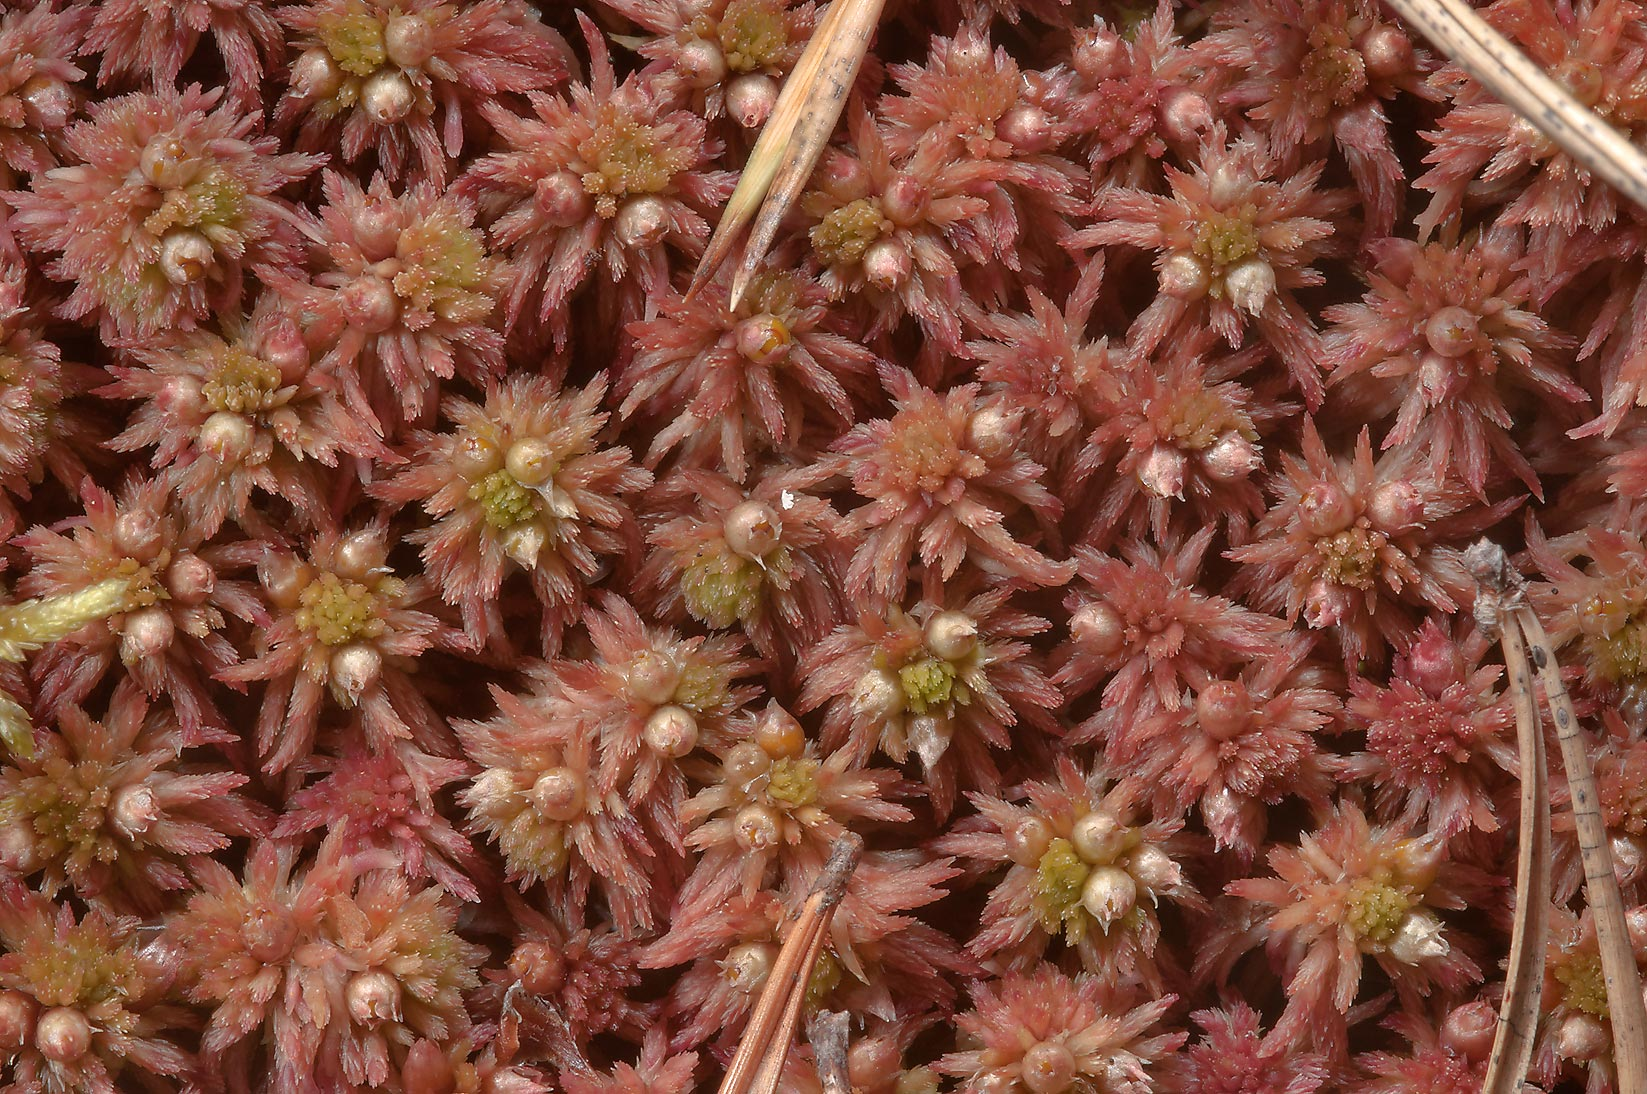 Sphagnum moss with emerging spore capsules north...miles north from St.Petersburg. Russia